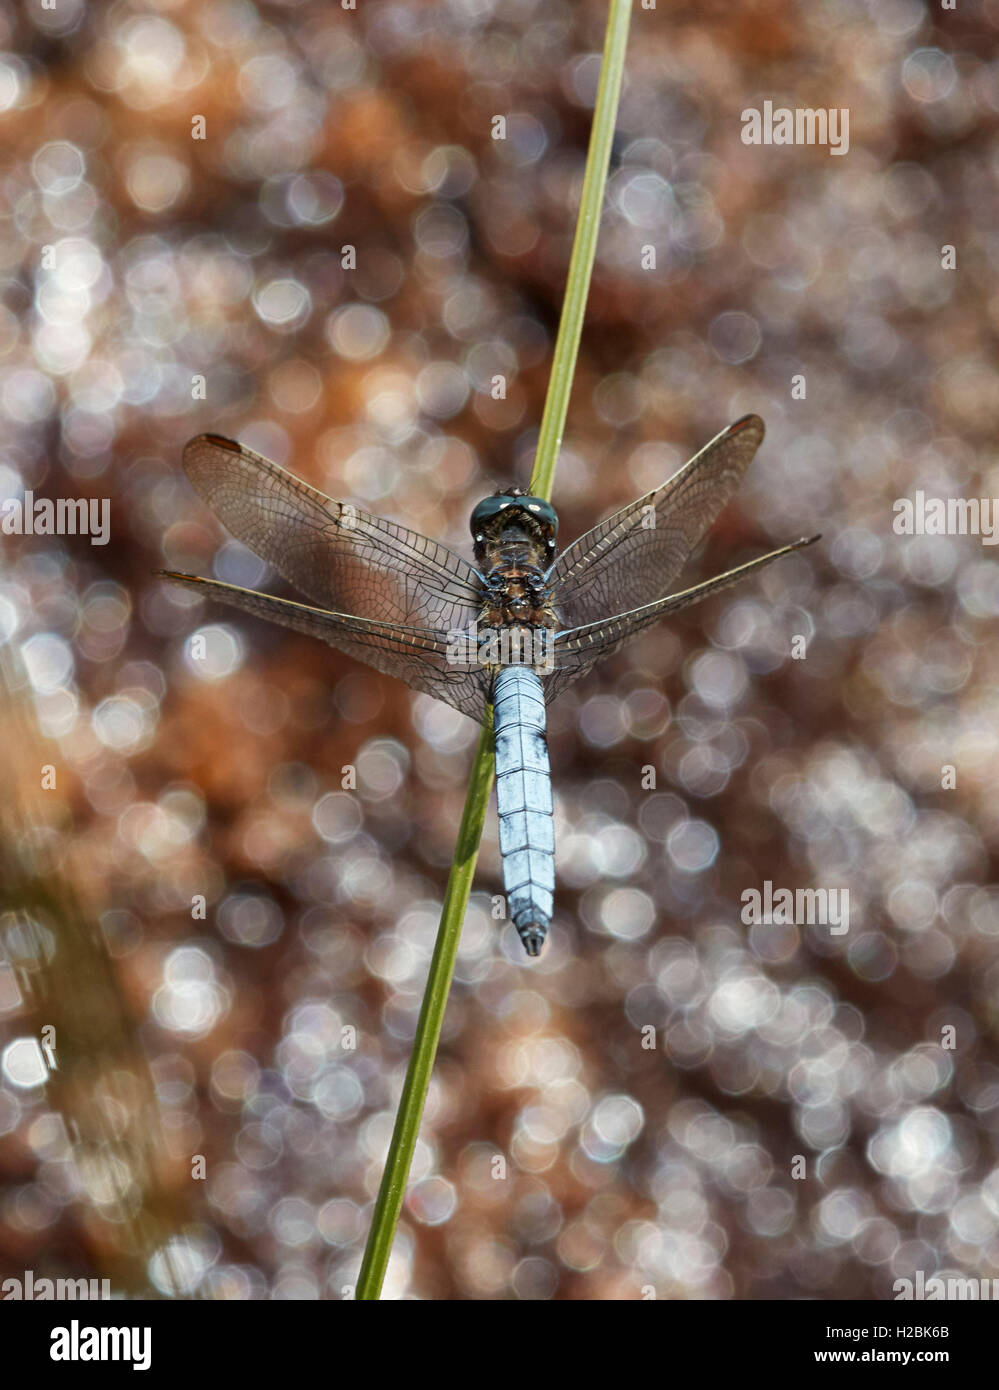 Keeled Skimmer dragonfly perched on reed. Thursley Common, Surrey, England. - Stock Image